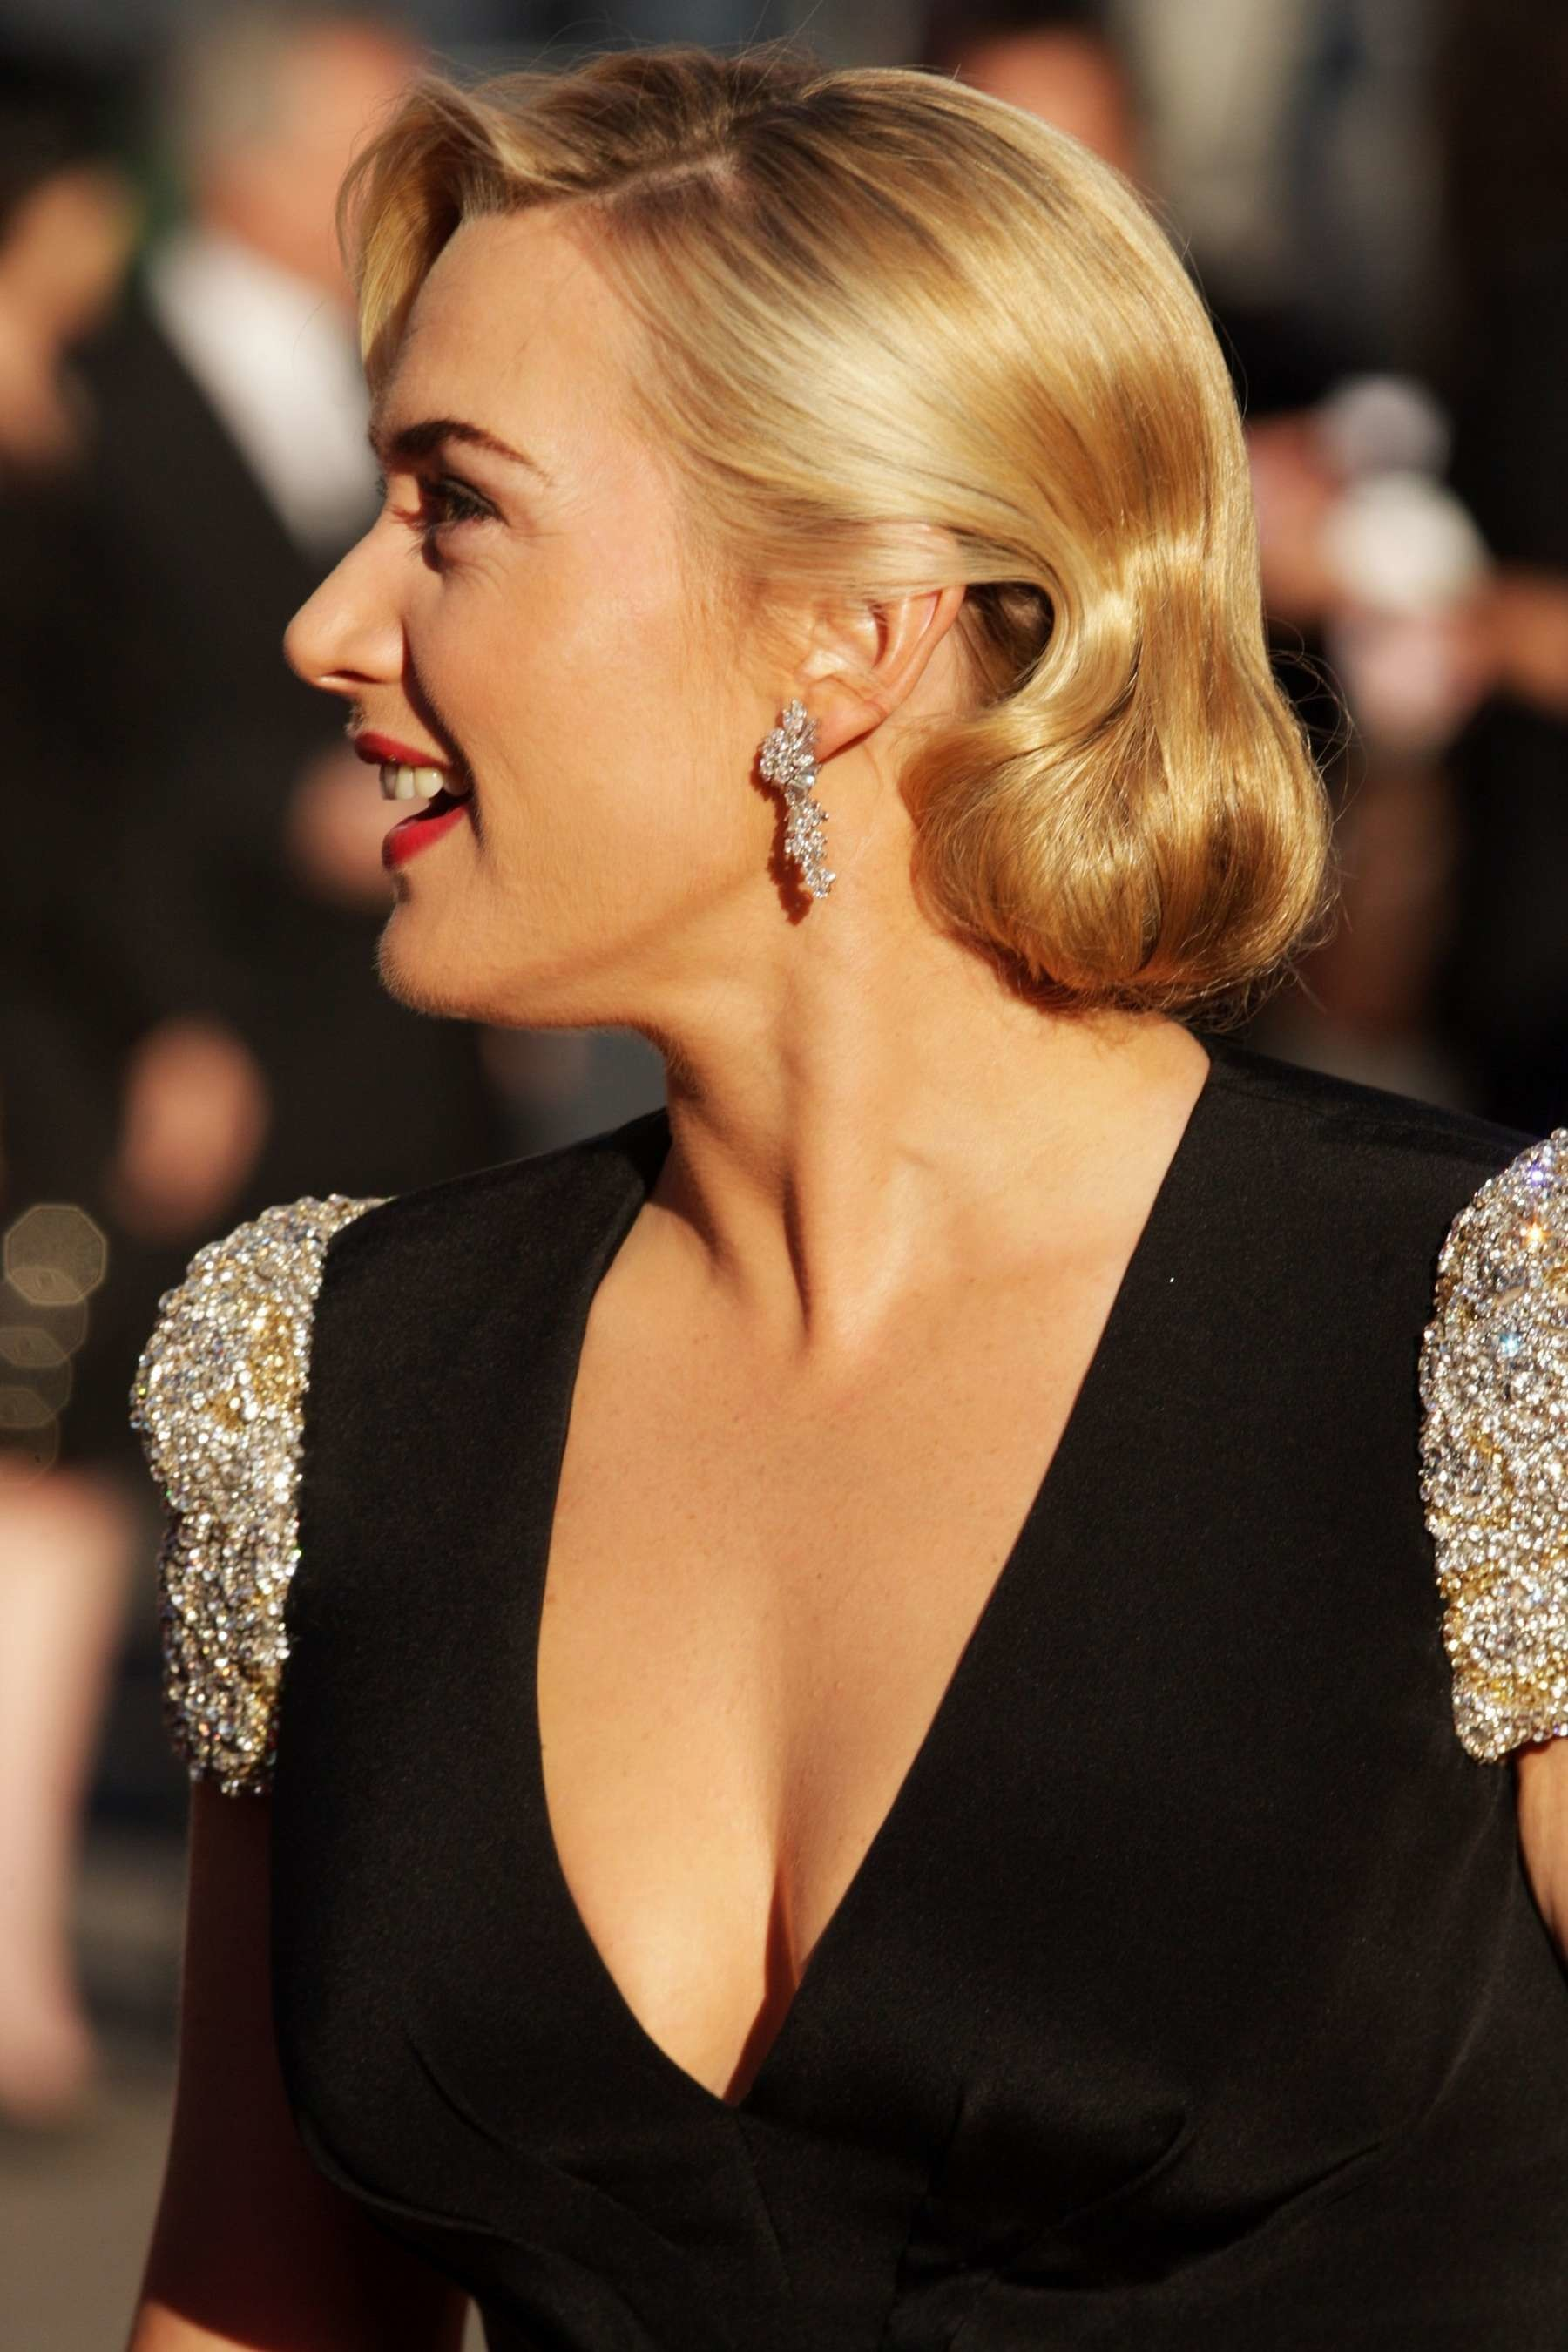 Kate Winslet at Premiere Titanic 3D -06 – Full Size